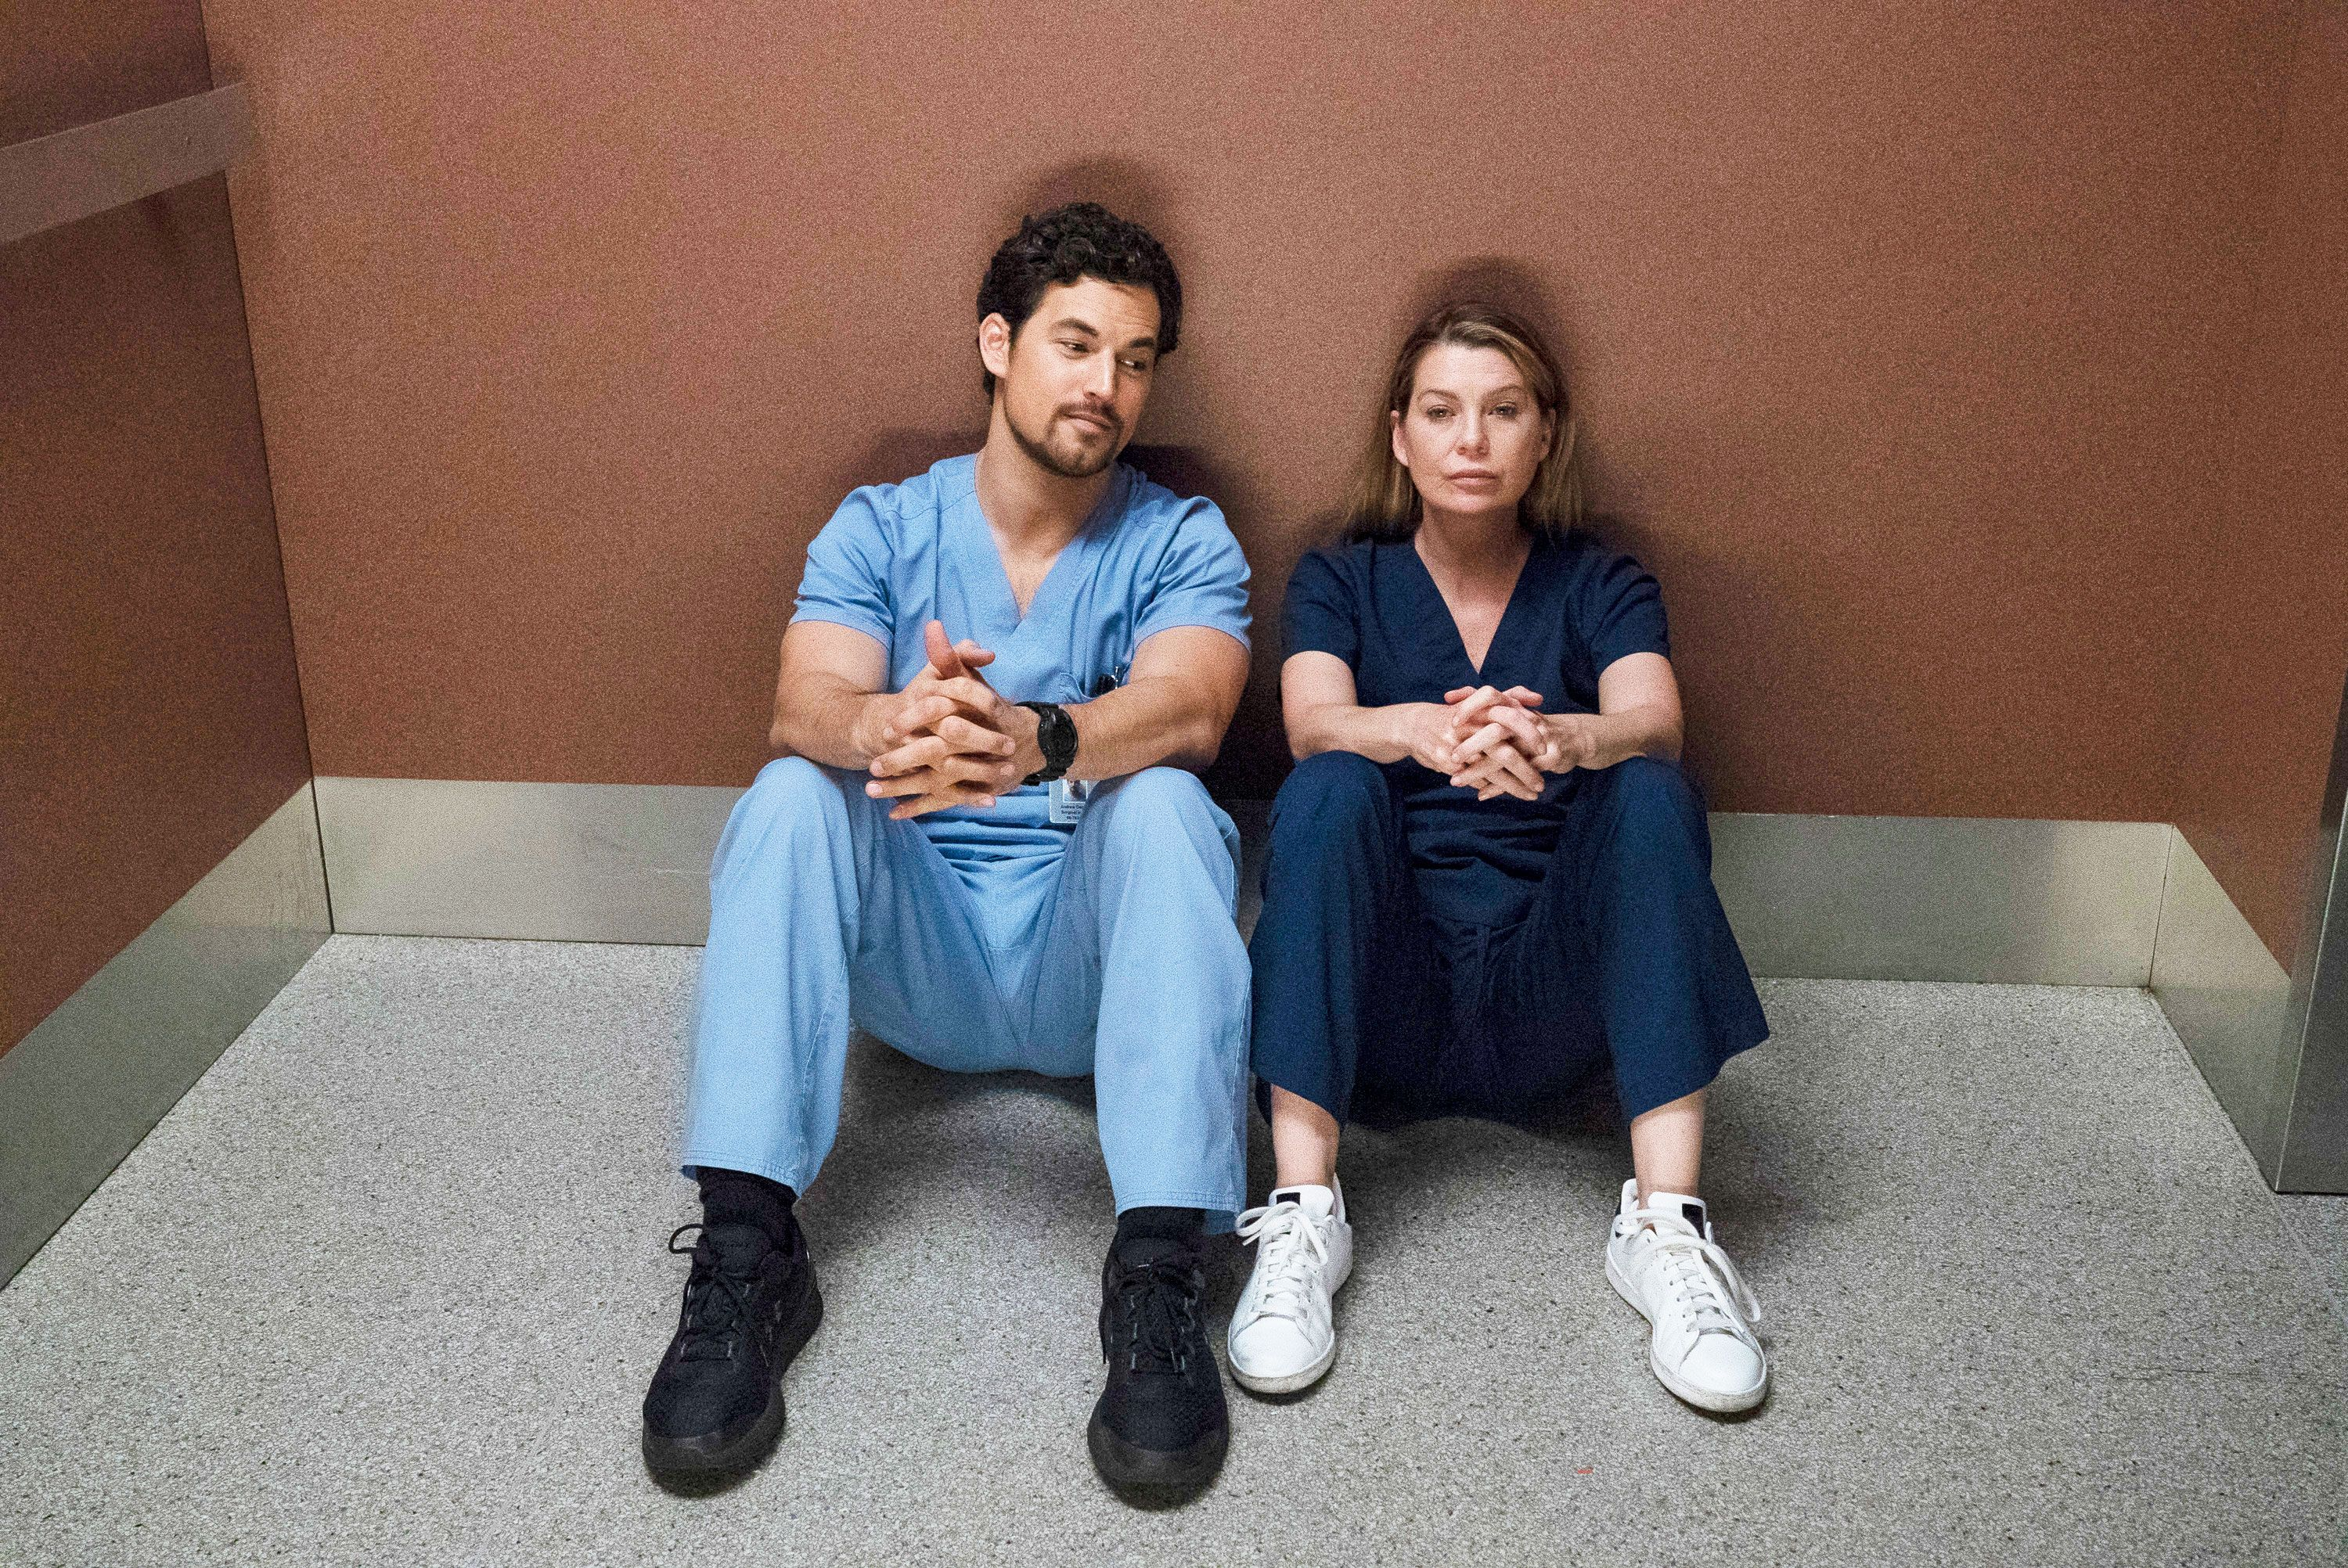 Grey's Anatomy premiere leaves fans devastated with emotional storyline